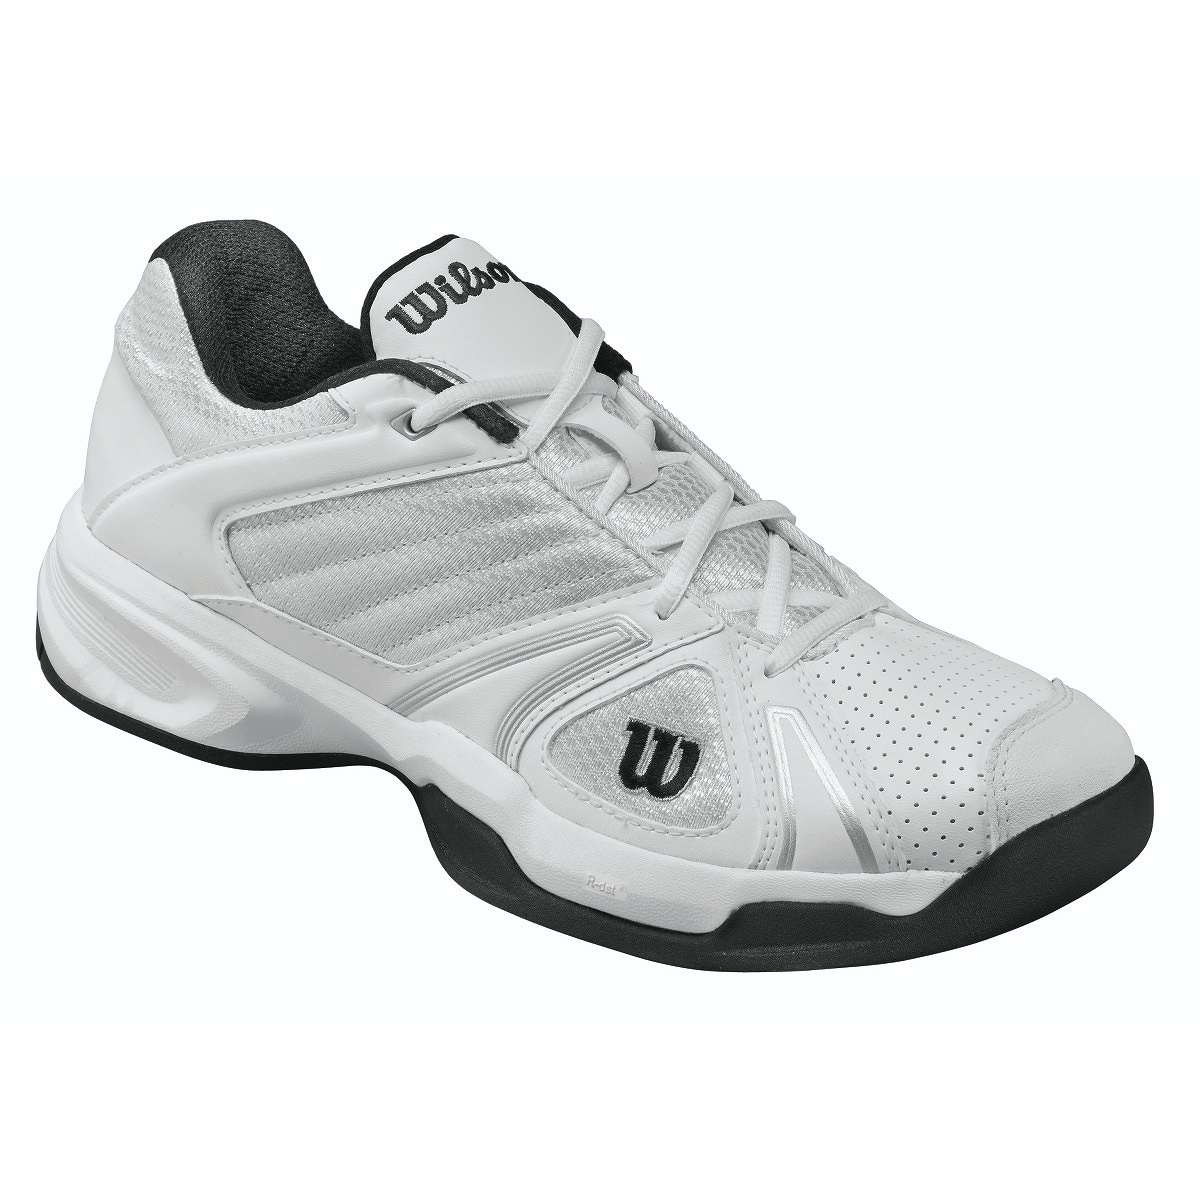 Details about Wilson Open AC Mens Tennis Shoes